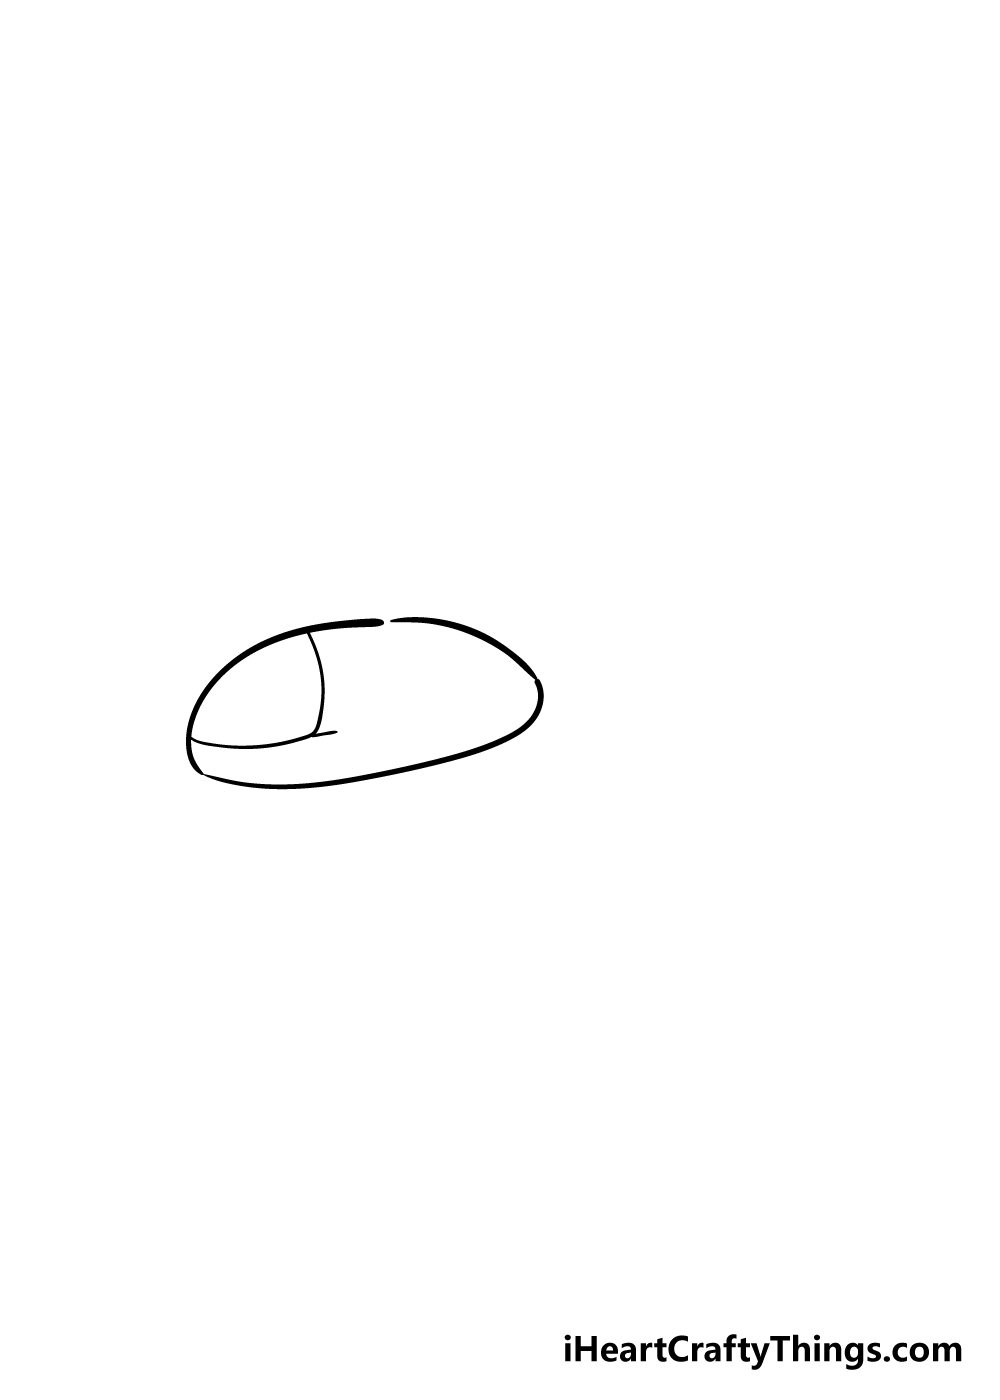 helicopter drawing step 1